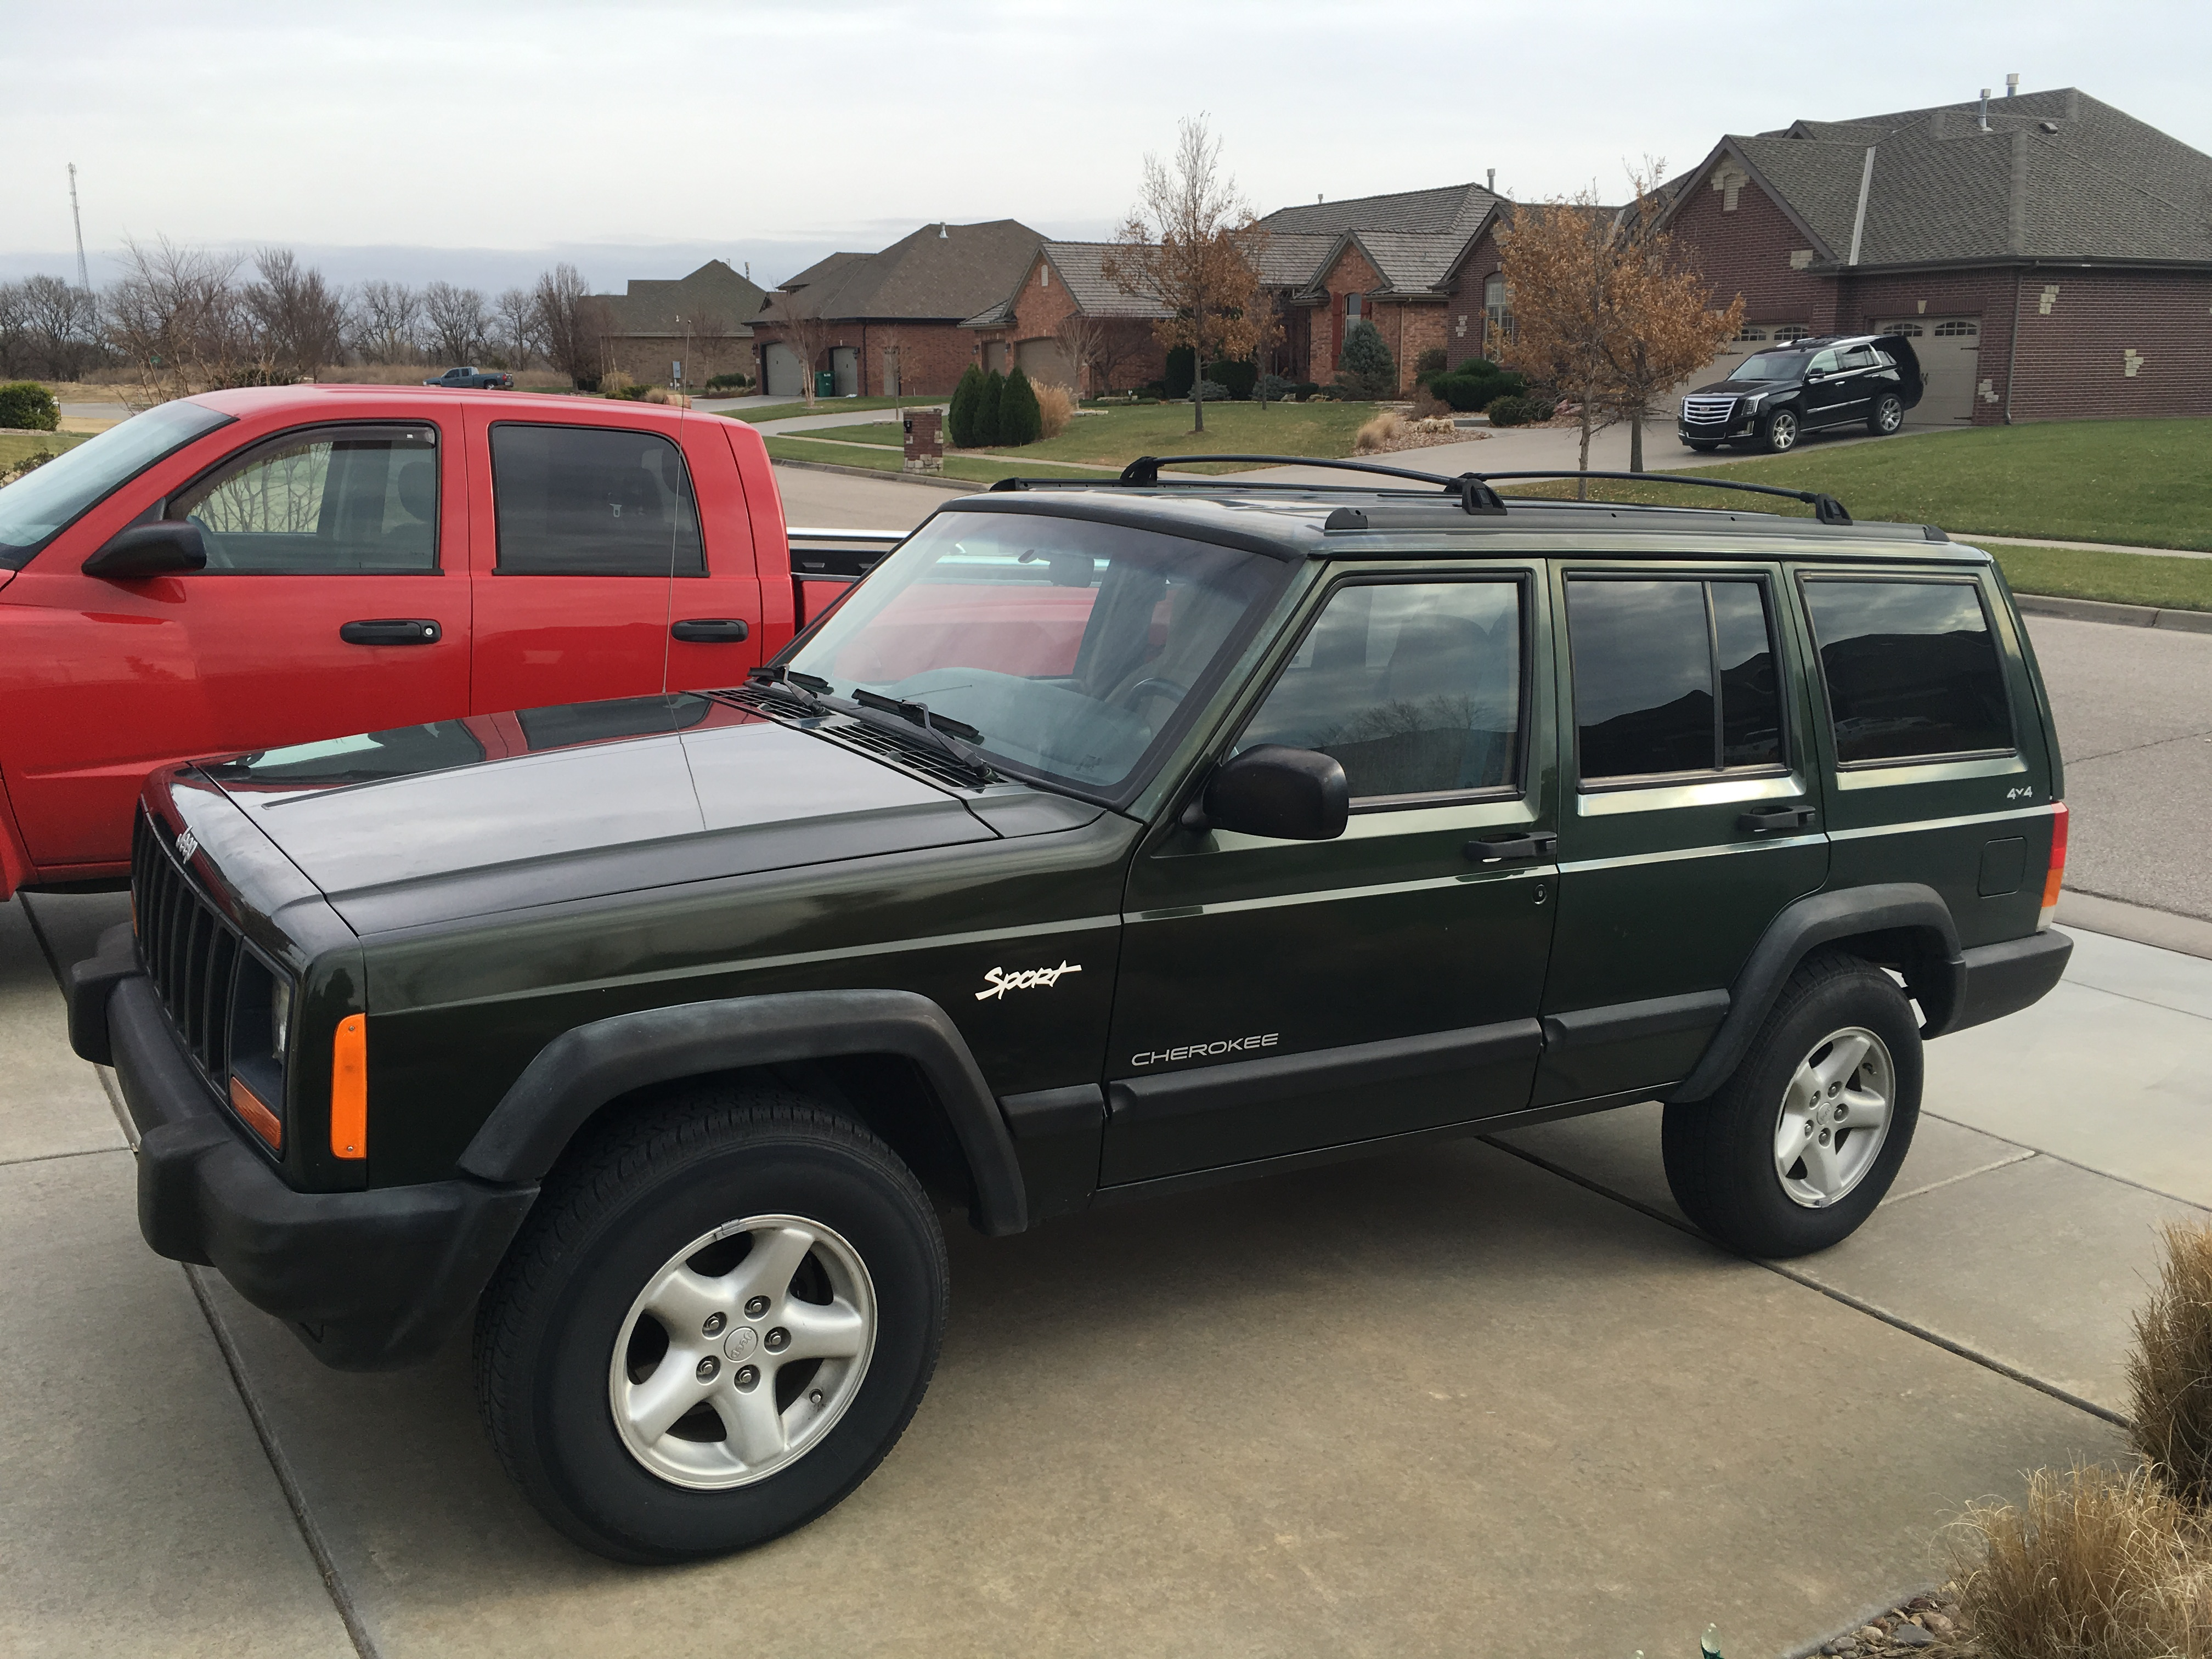 New project A 97 Jeep Cherokee XJ with 244 000 on the clock